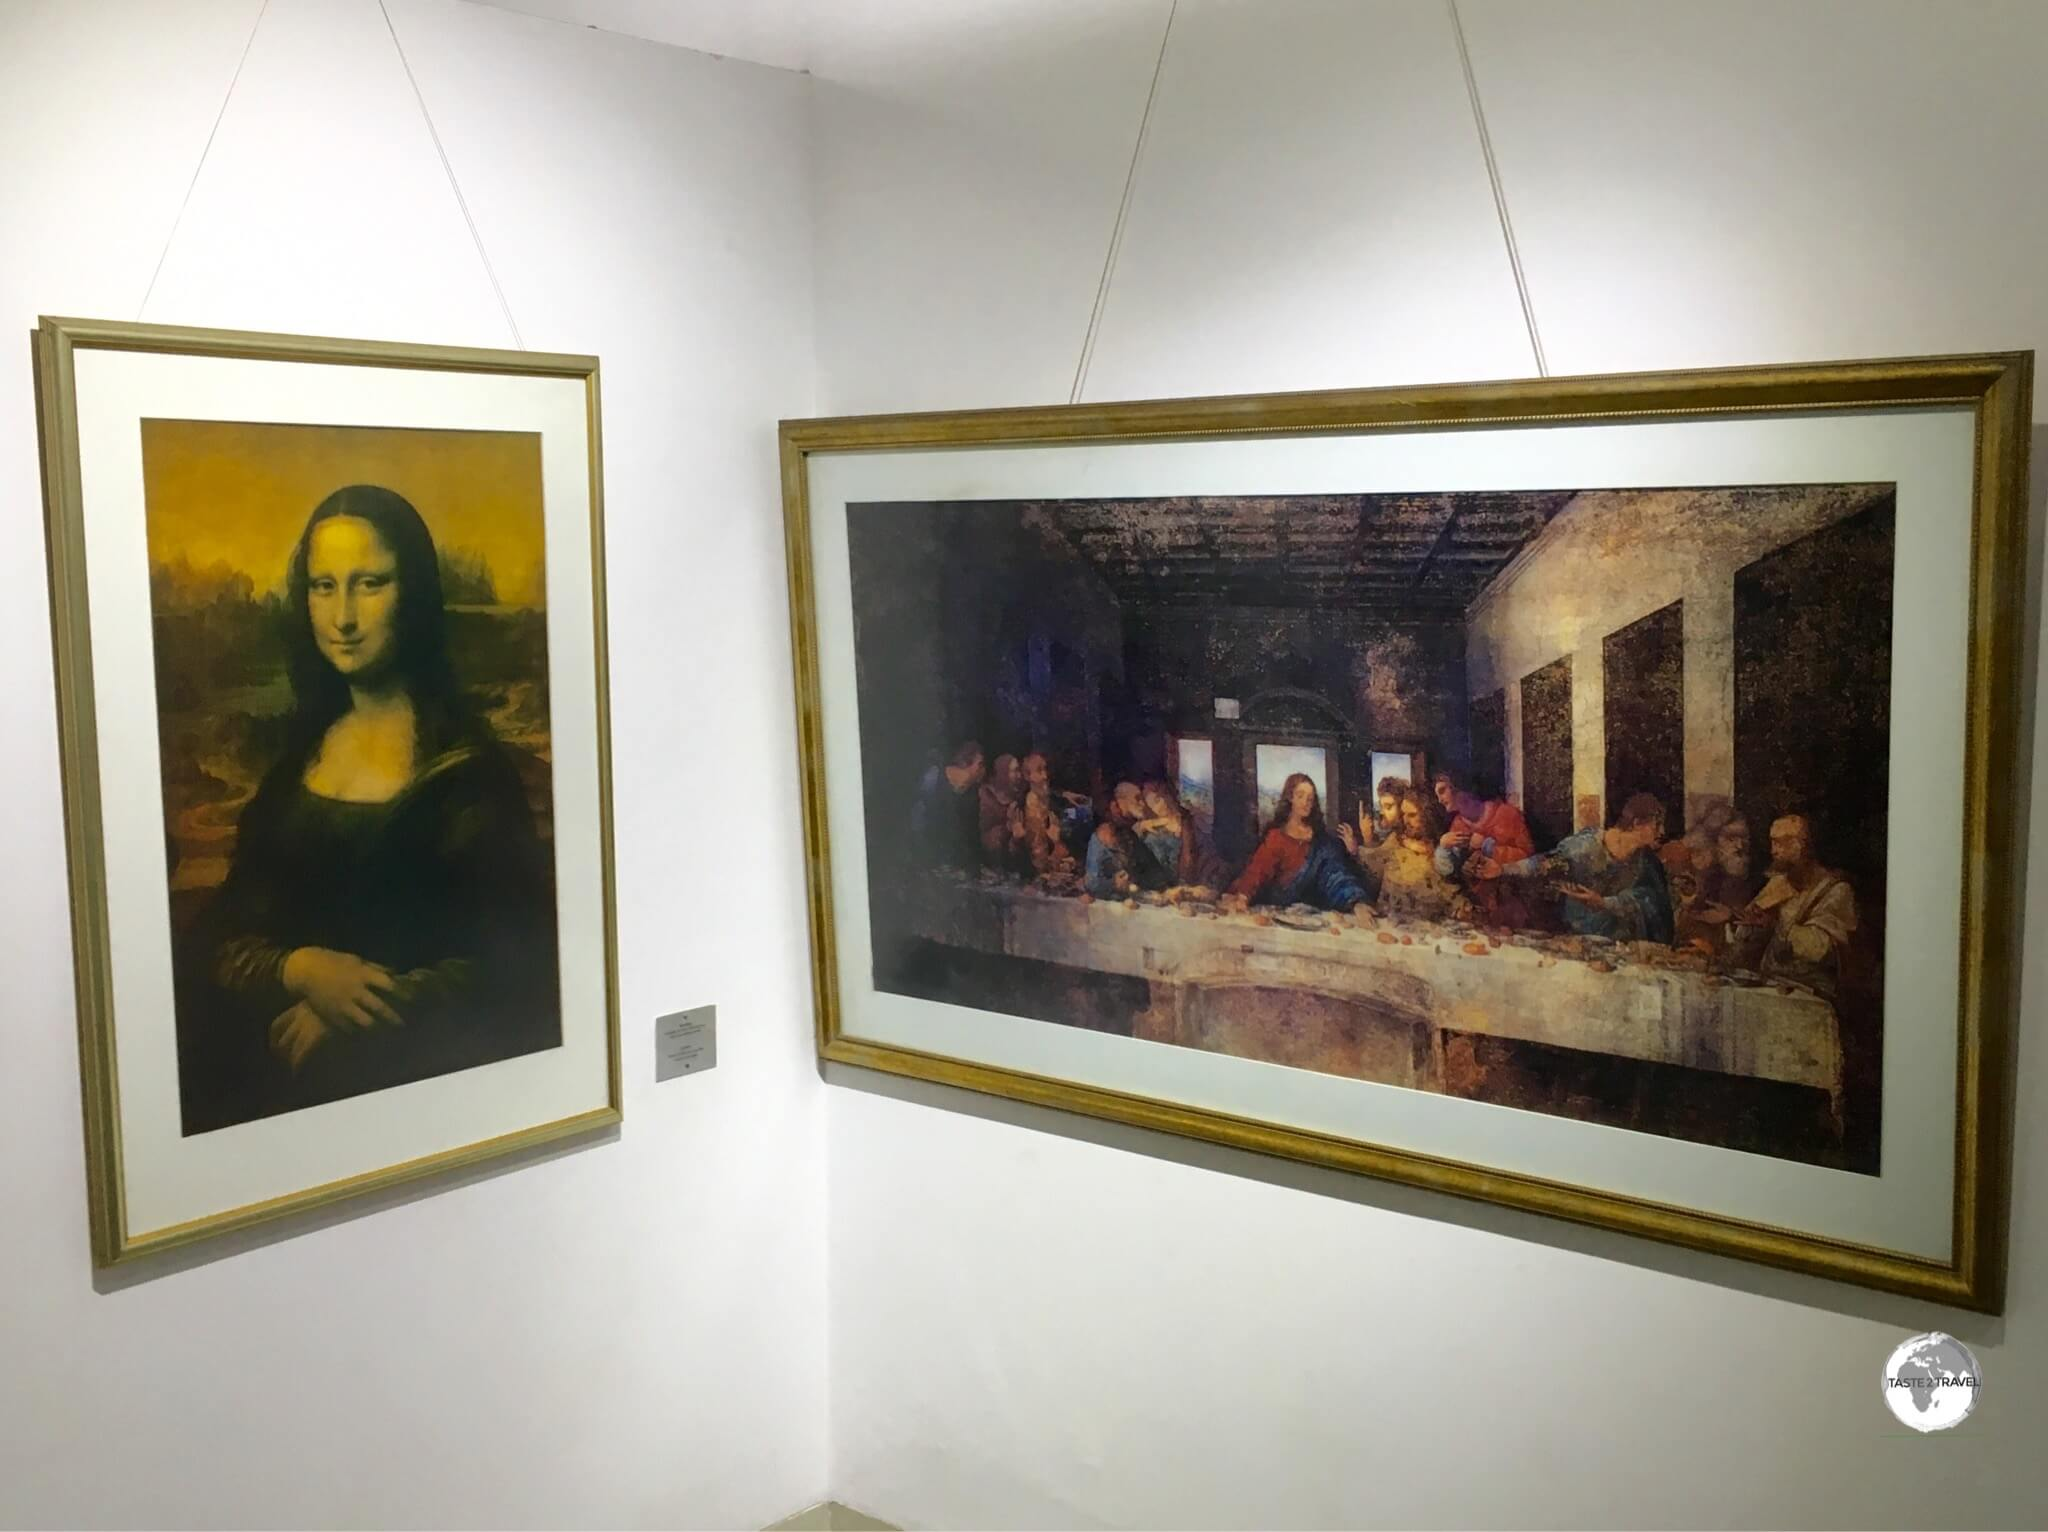 Where else in the world can you view the Mona Lisa alongside the Last Supper?